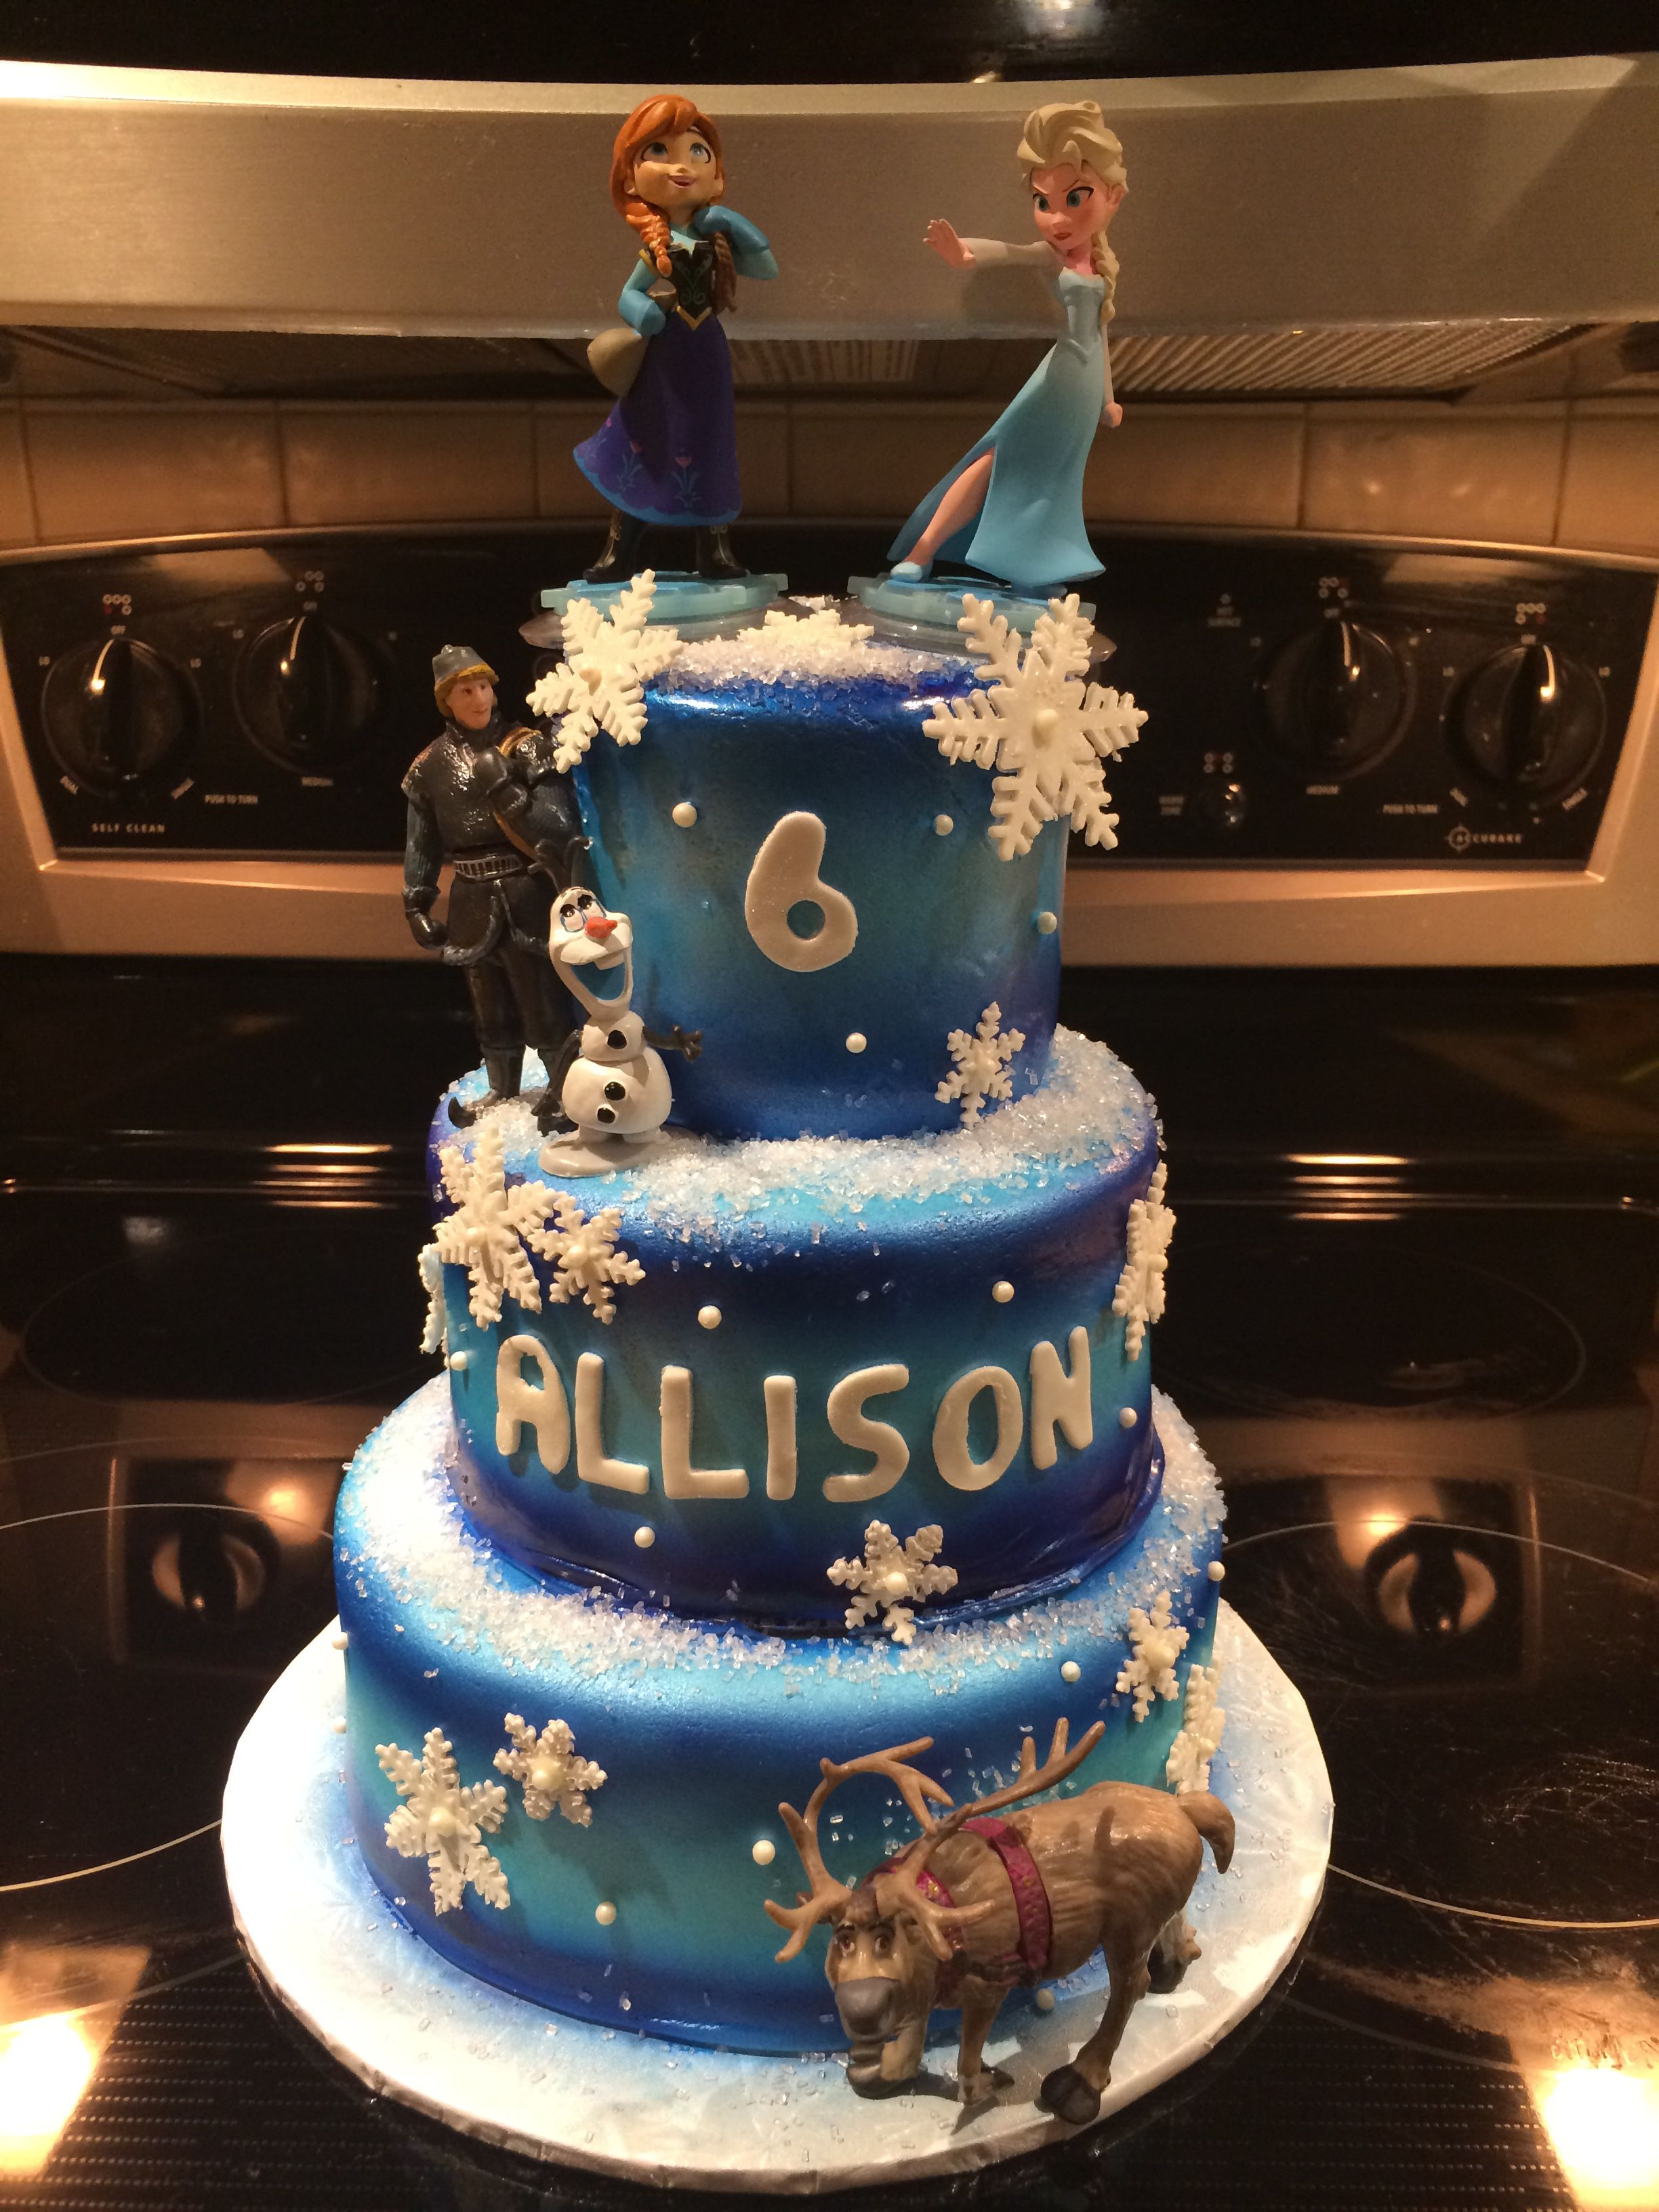 20+ Cake by jason baltimore ideas in 2021